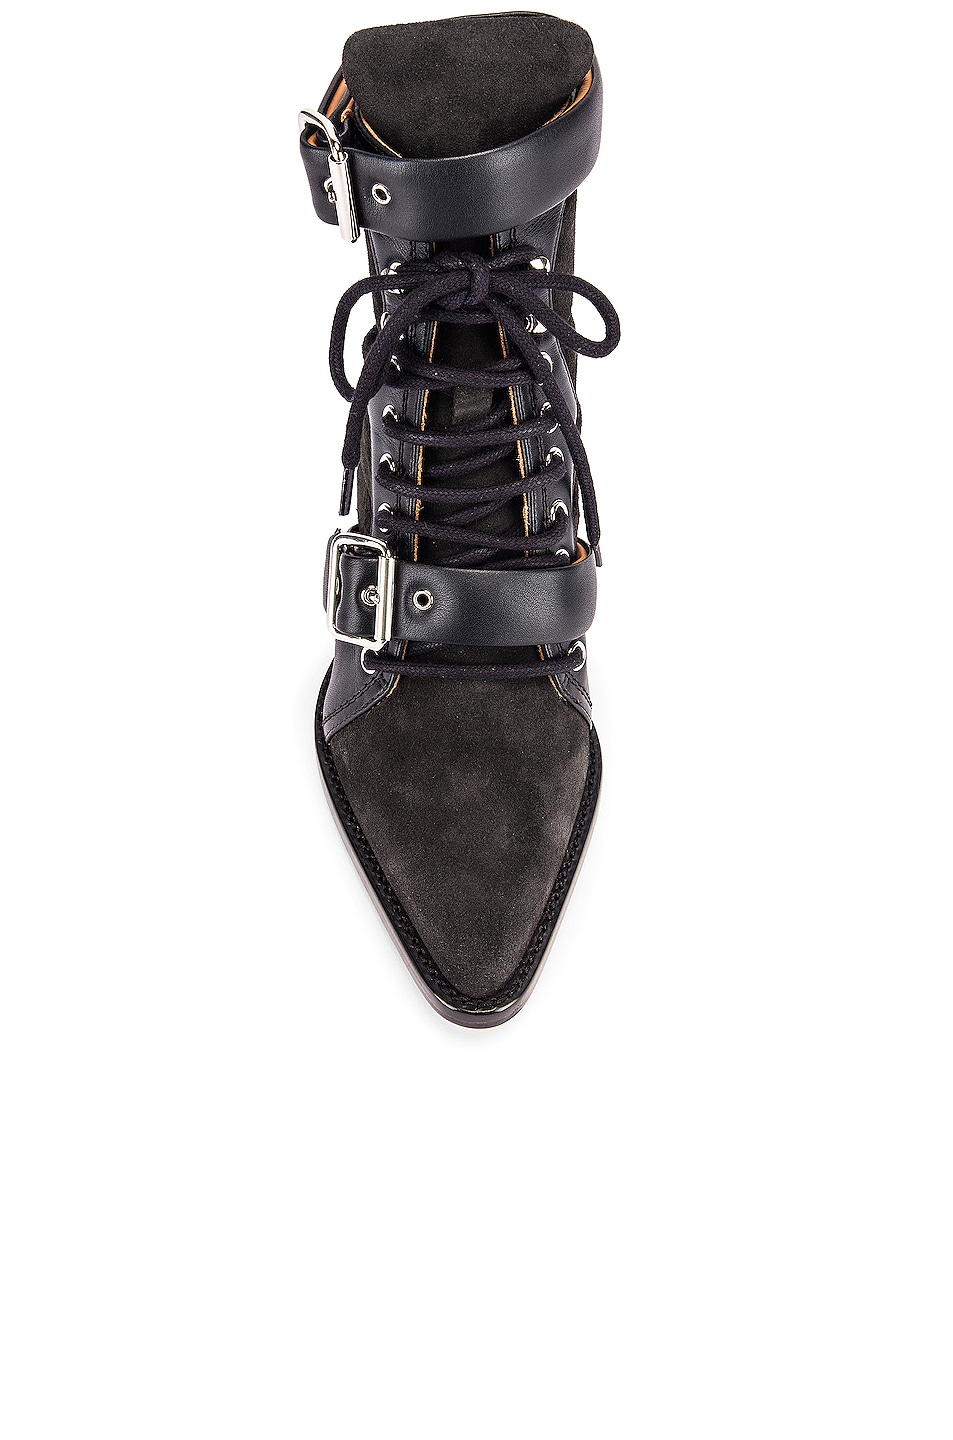 Image 4 of Chloe Lace Up Buckle Boots in Charcoal Black